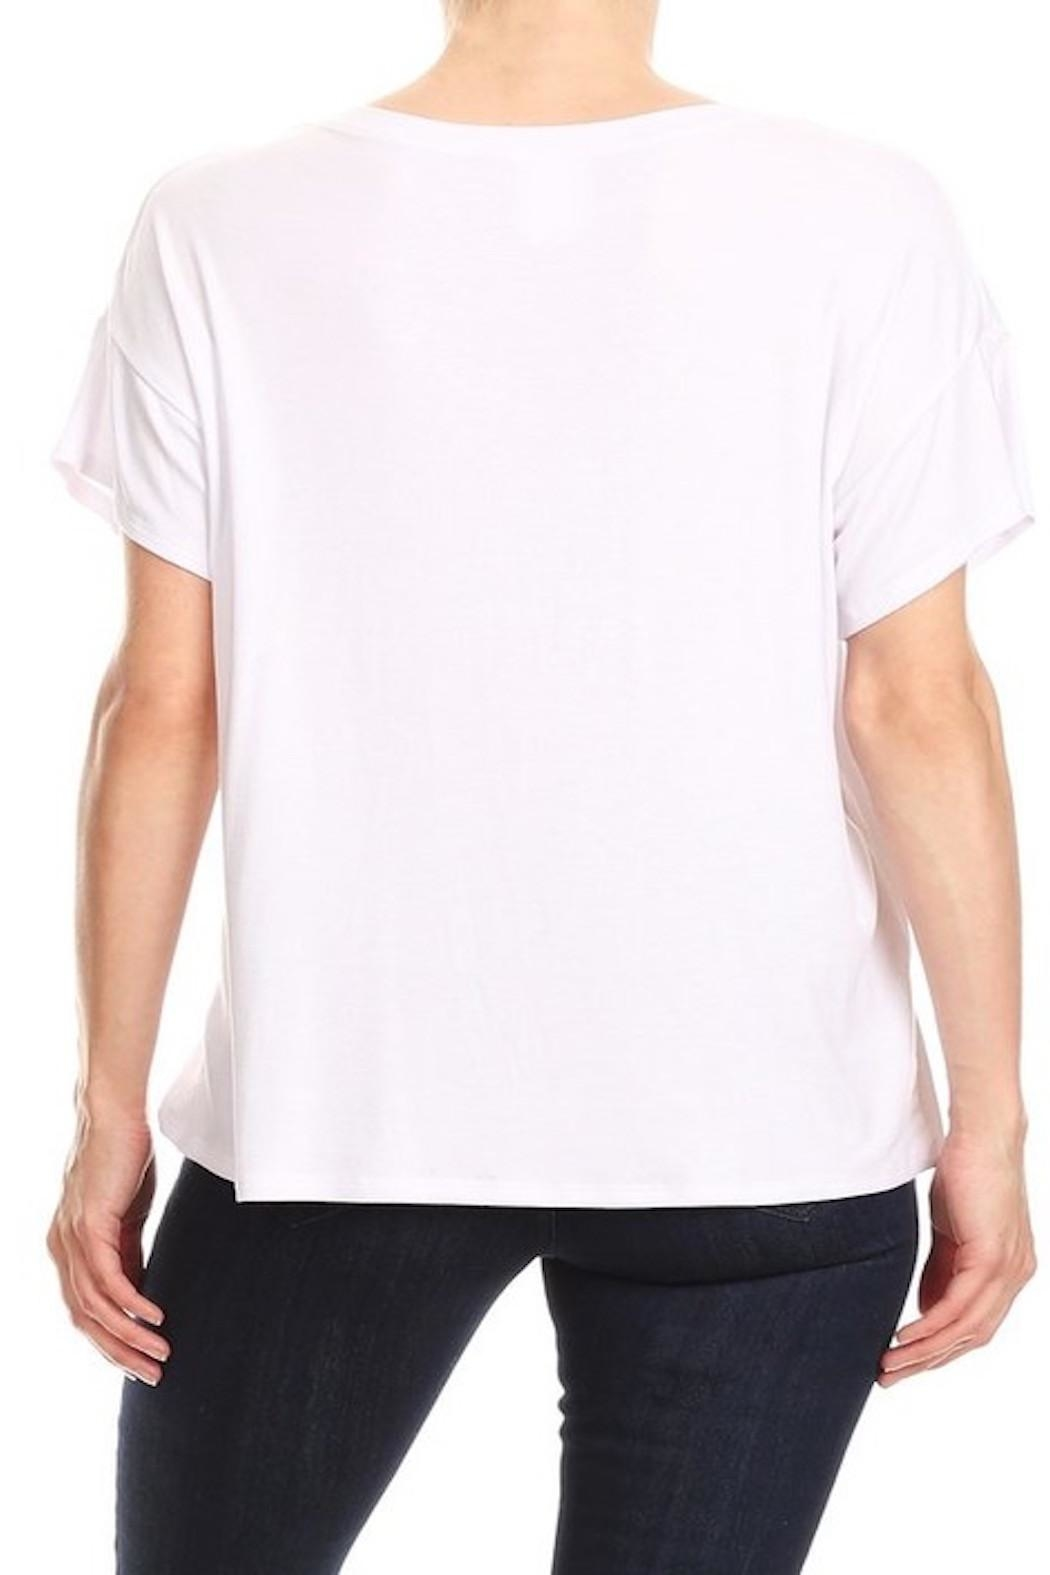 Apricot Lane Perfect Tee - Side Cropped Image